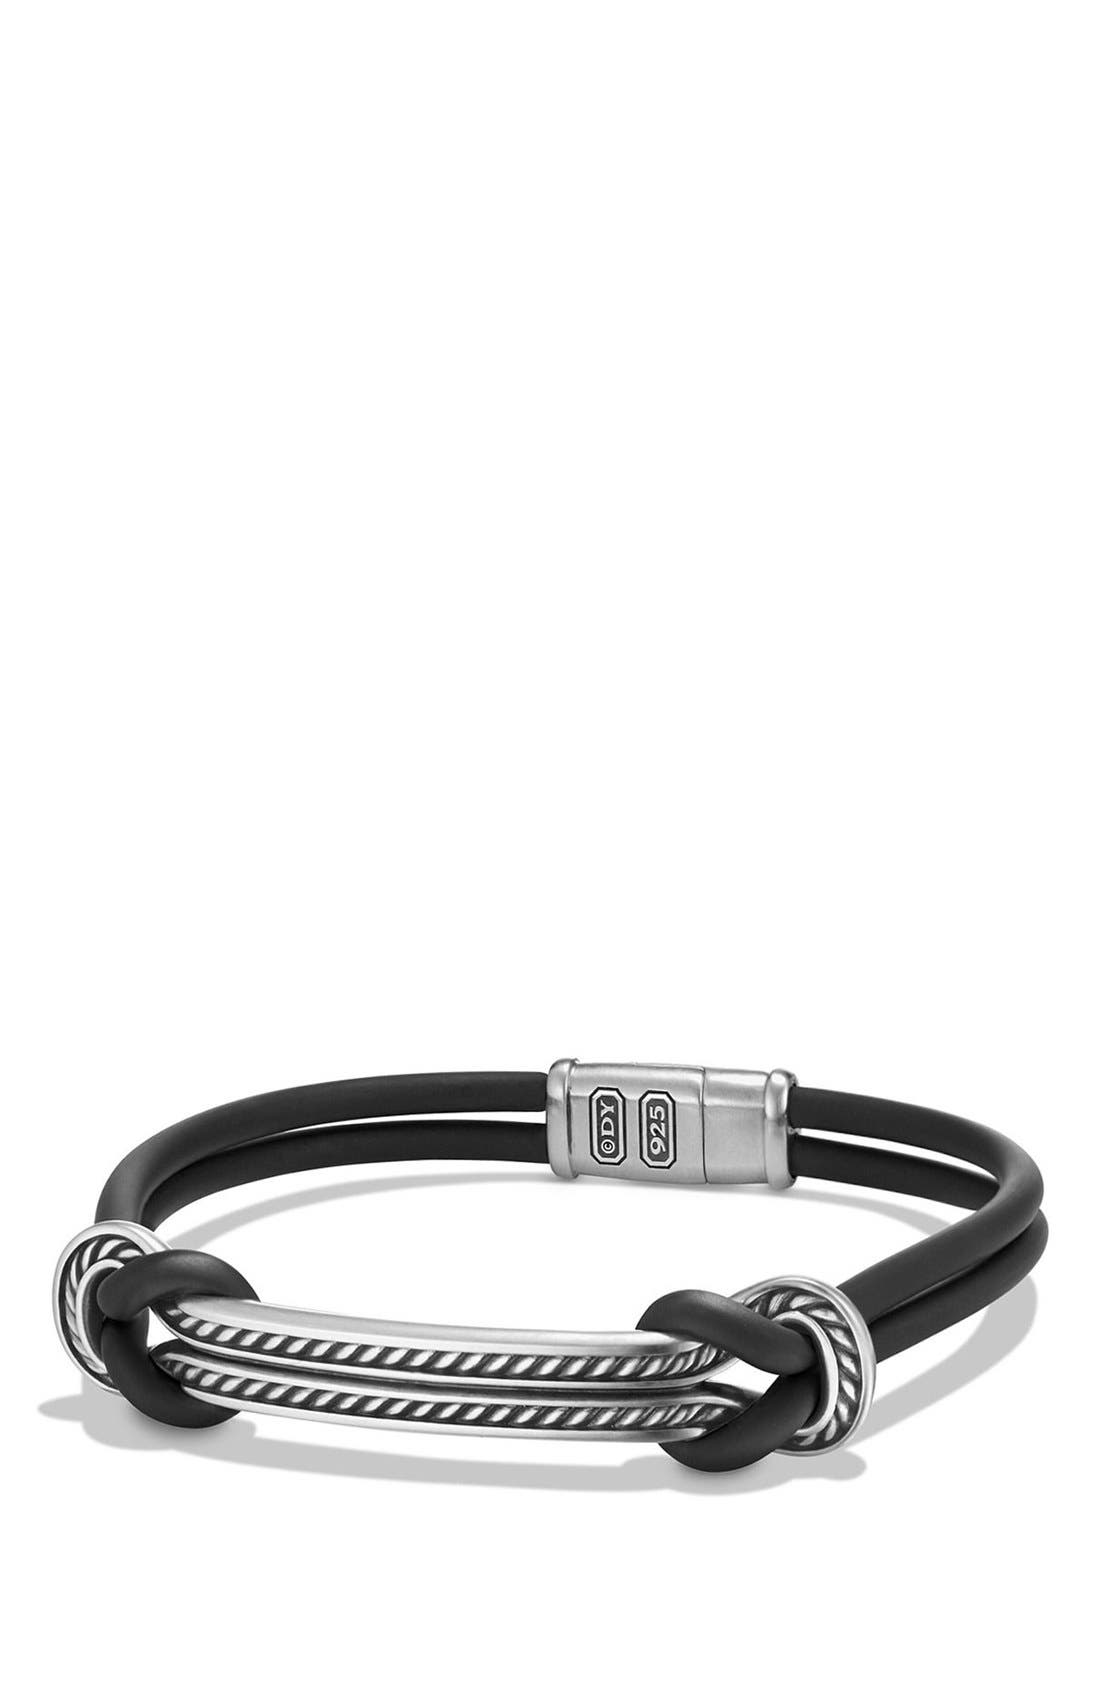 'Maritime' Rubber Reef Knot ID Bracelet,                         Main,                         color, SILVER/ BLACK